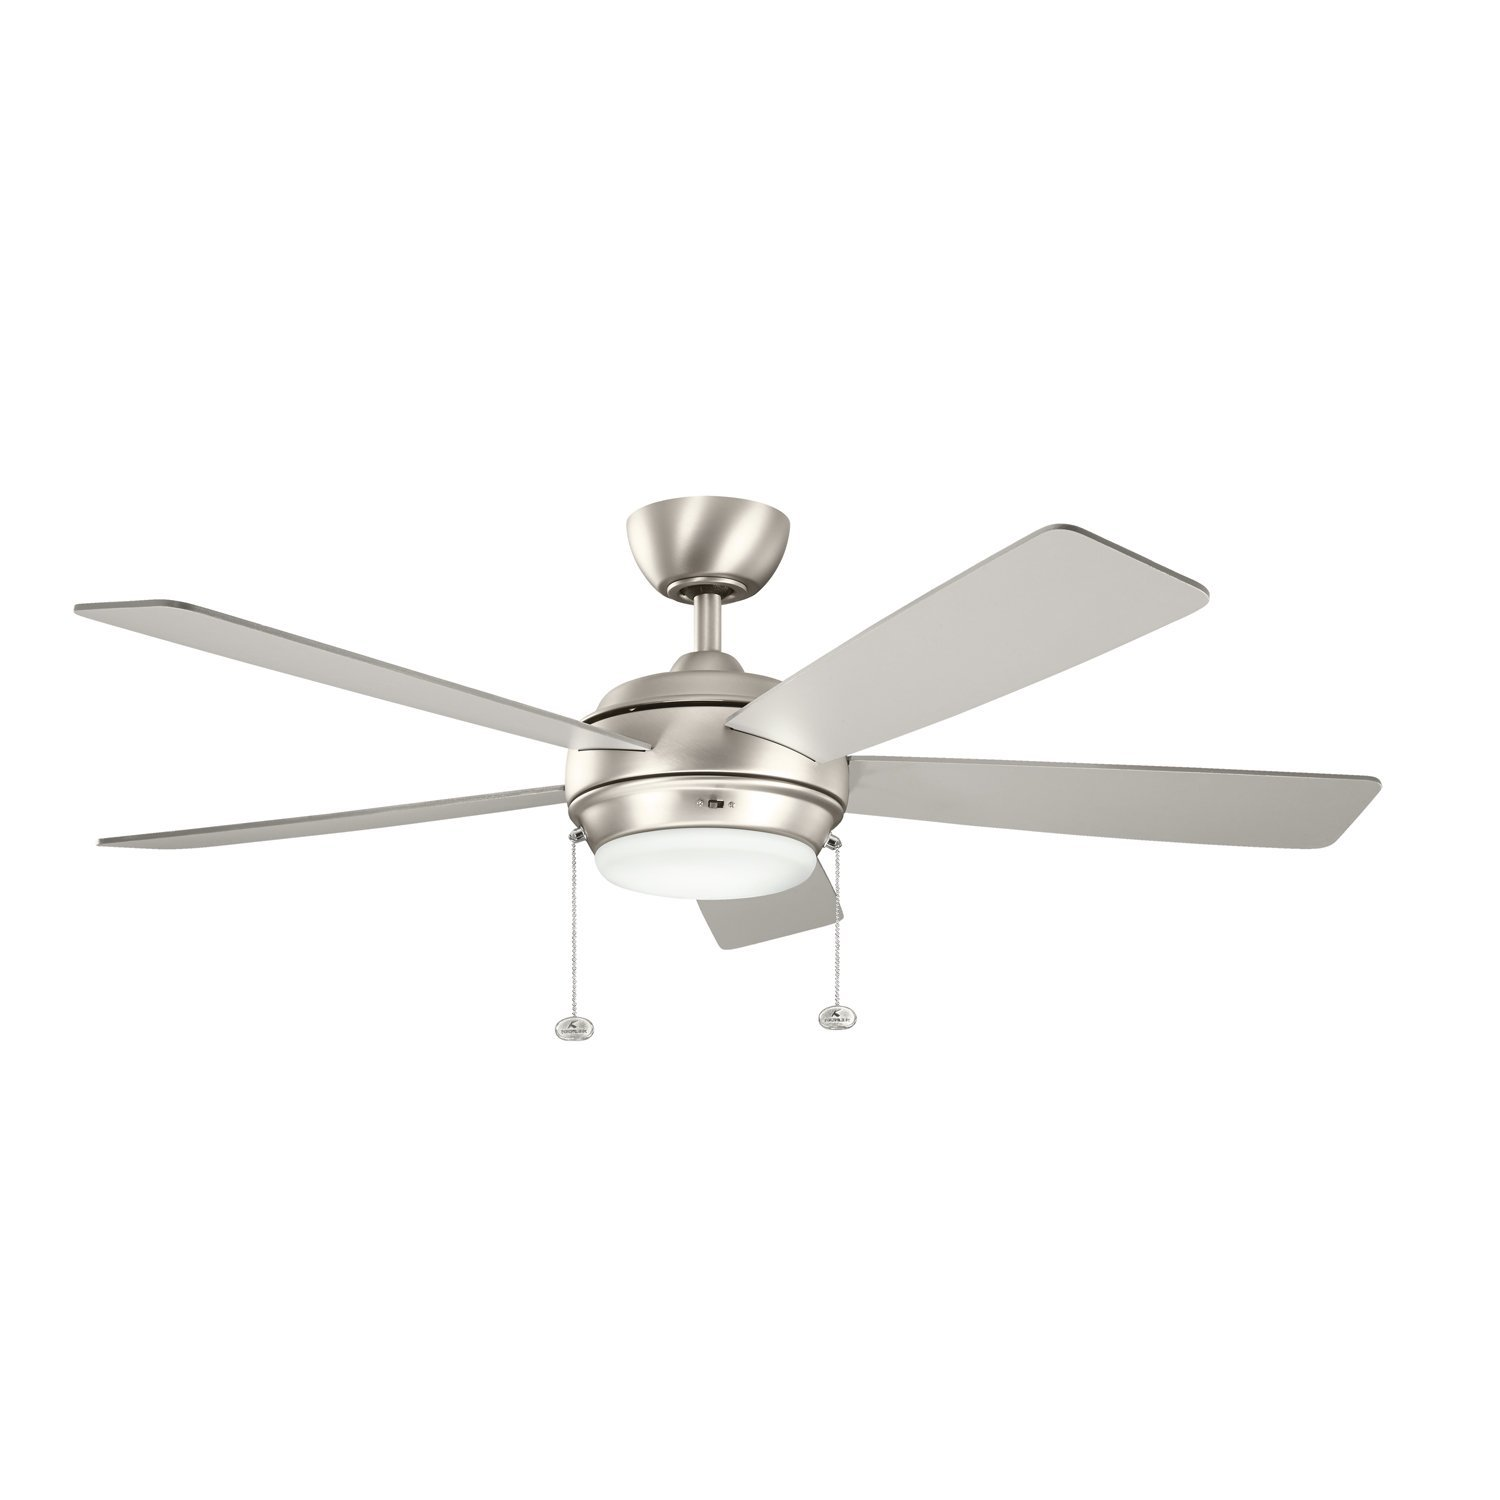 Kichler Lighting 300173NI Starkk 52IN Ceiling Fan, Brushed Nickel Finish with Reversible Silver/Walnut Blades and Satin Etched Glass Downlight